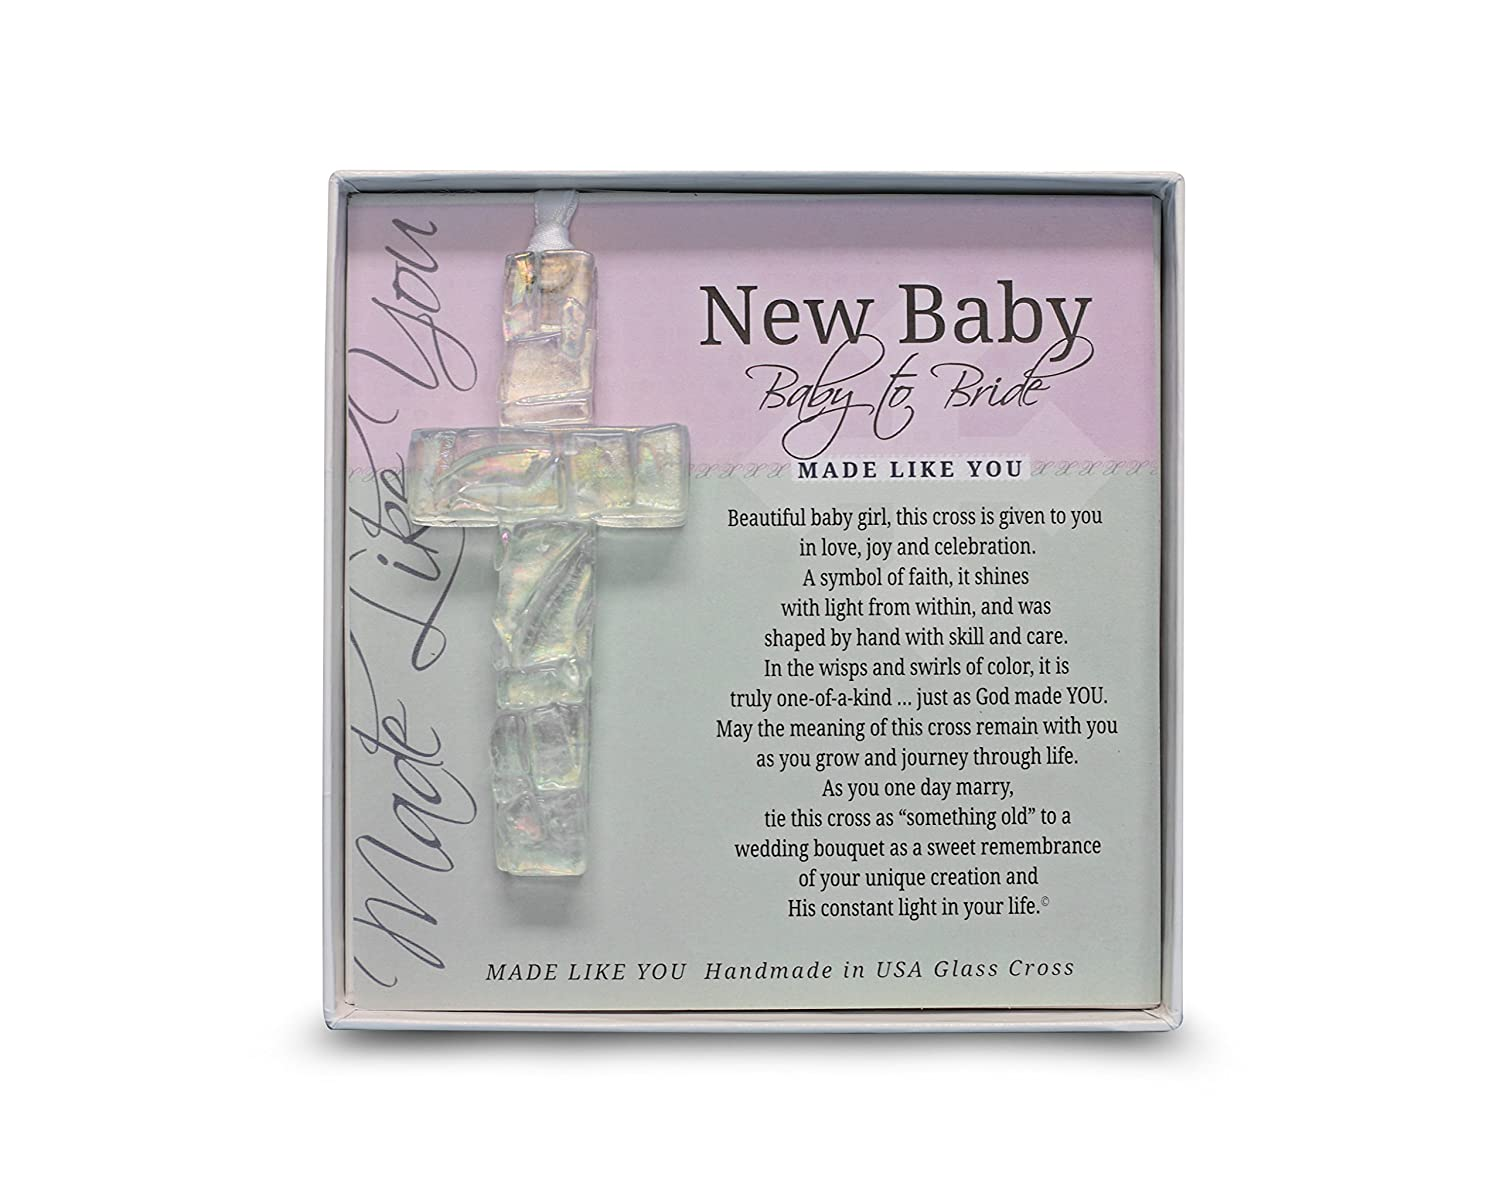 The Grandparent Gift Baby to Bride Glass Cross Keepsake Gift for Girl, Clear